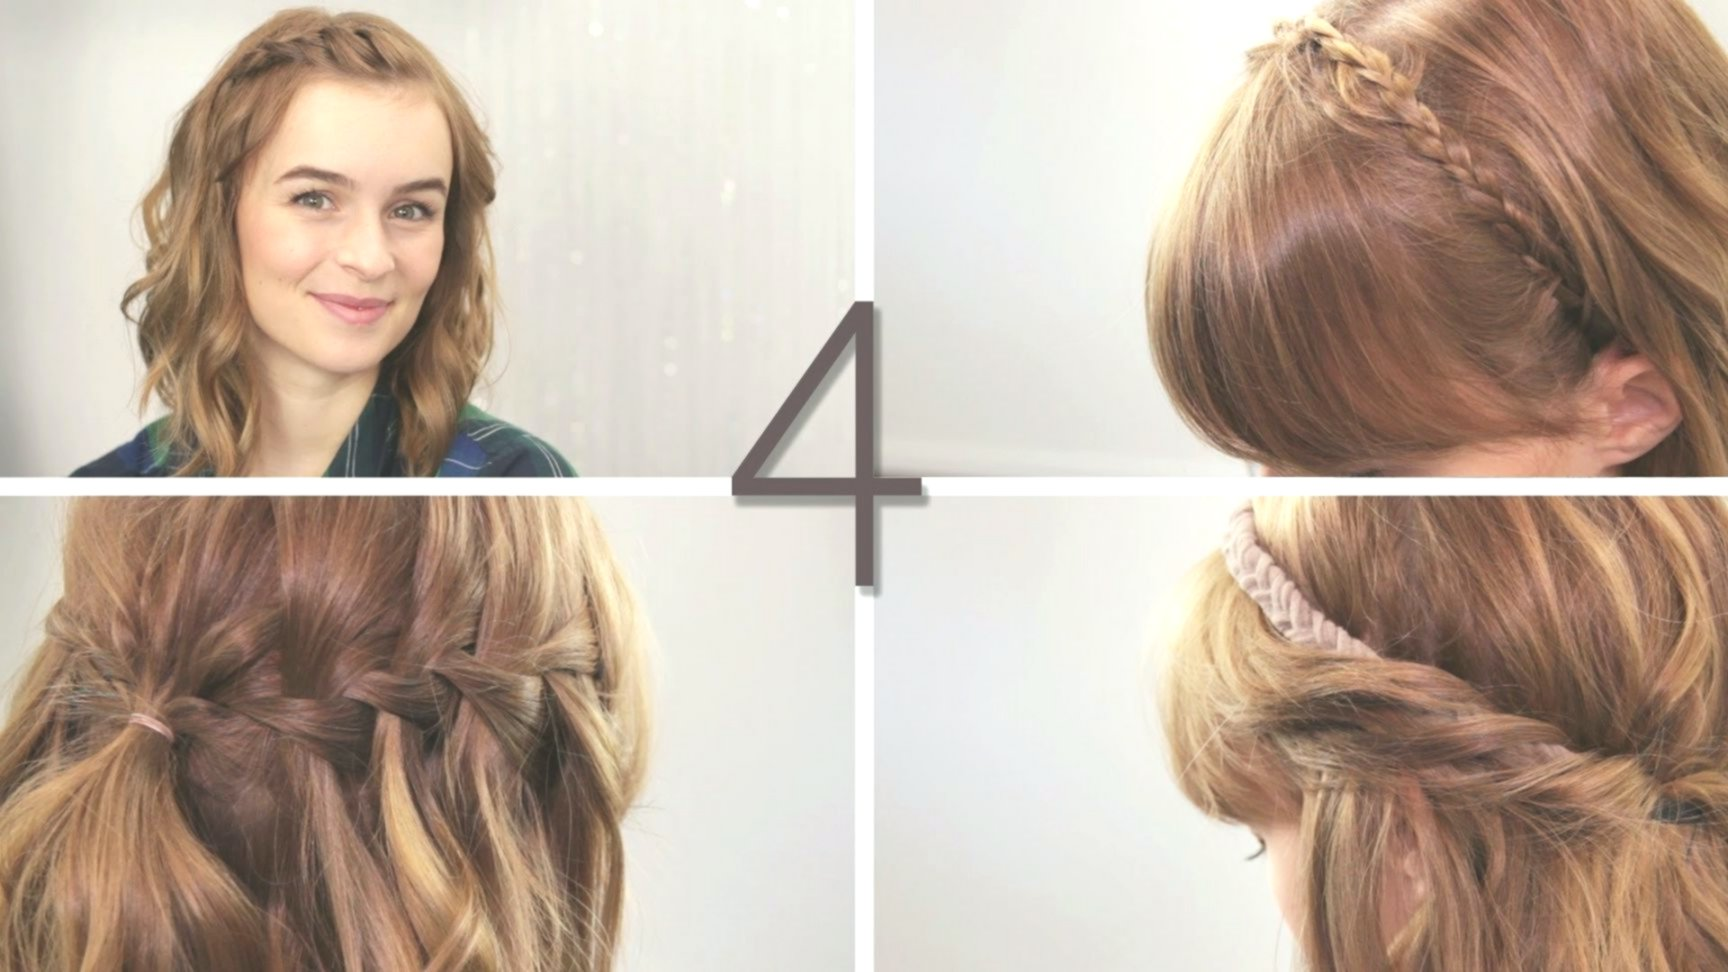 modern open hair hairstyles pattern - Fascinating open hair hairstyles decor